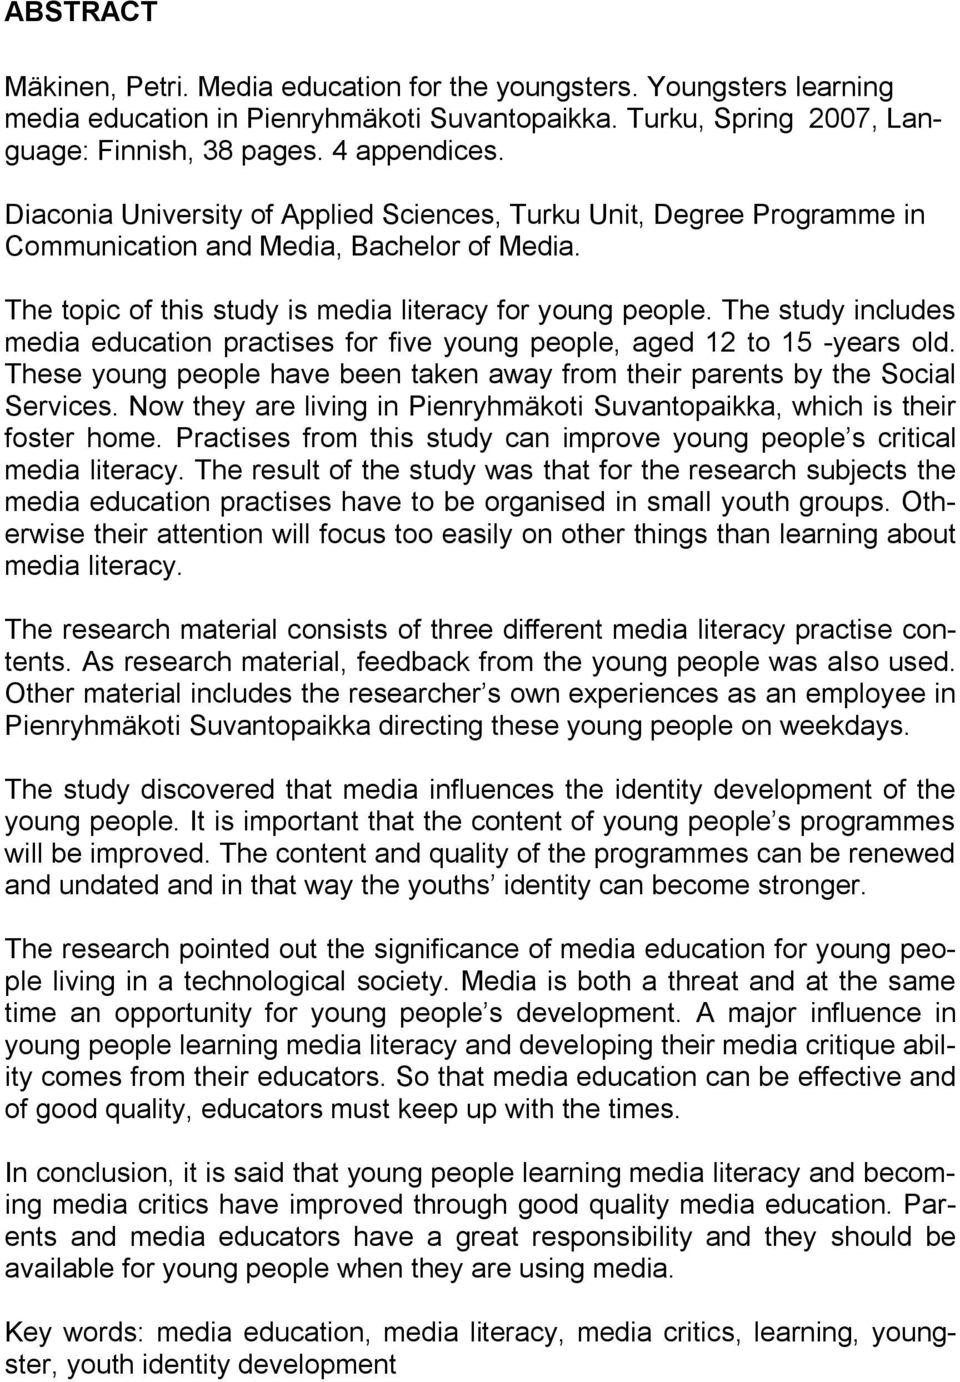 The study includes media education practises for five young people, aged 12 to 15 -years old. These young people have been taken away from their parents by the Social Services.